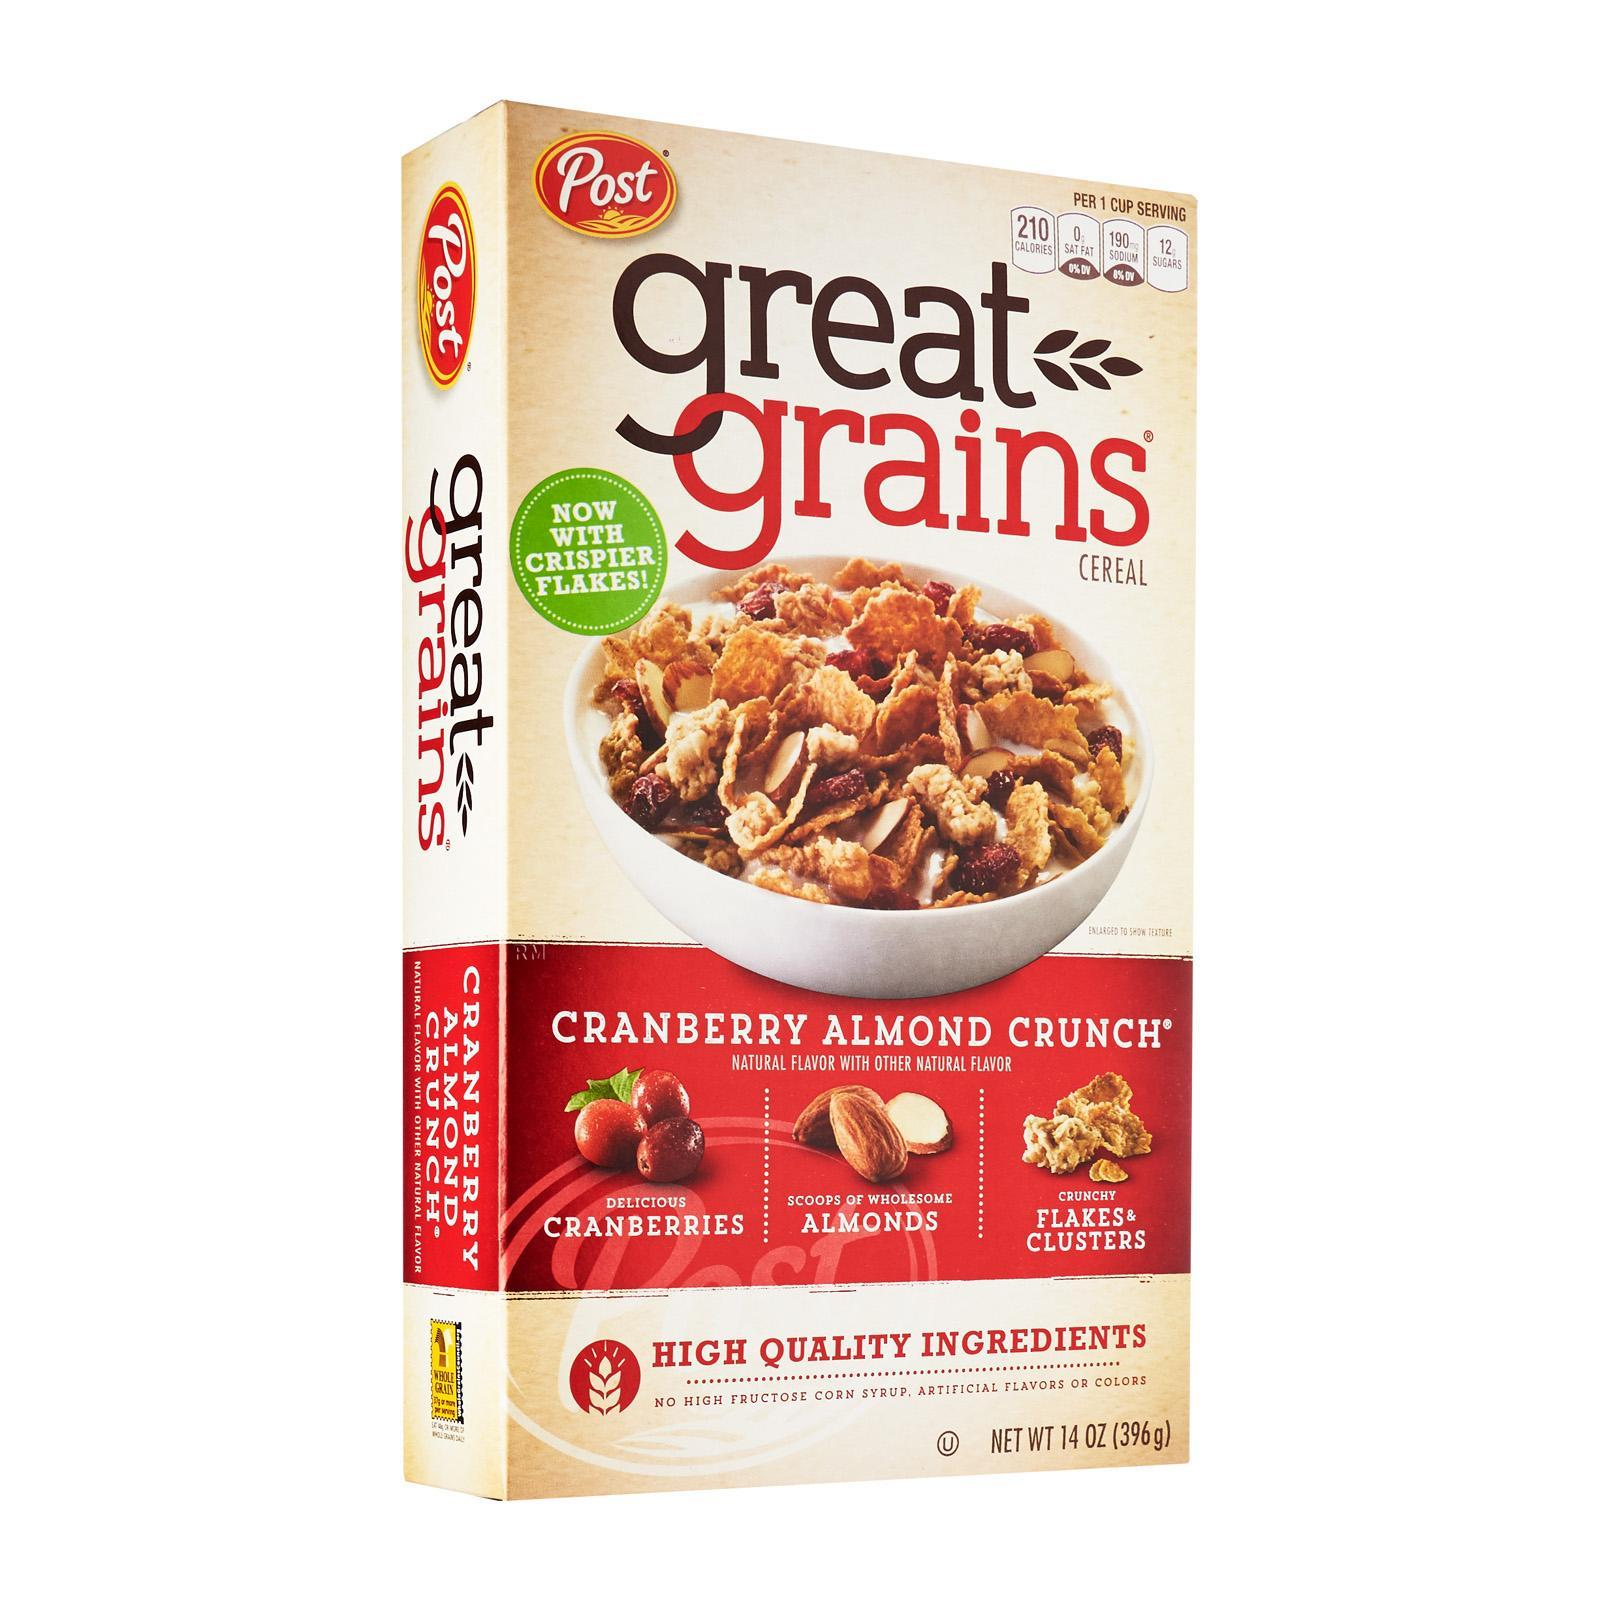 Post Selects Great Grains Cranberry Almond Crunch Whole Grain Cereal